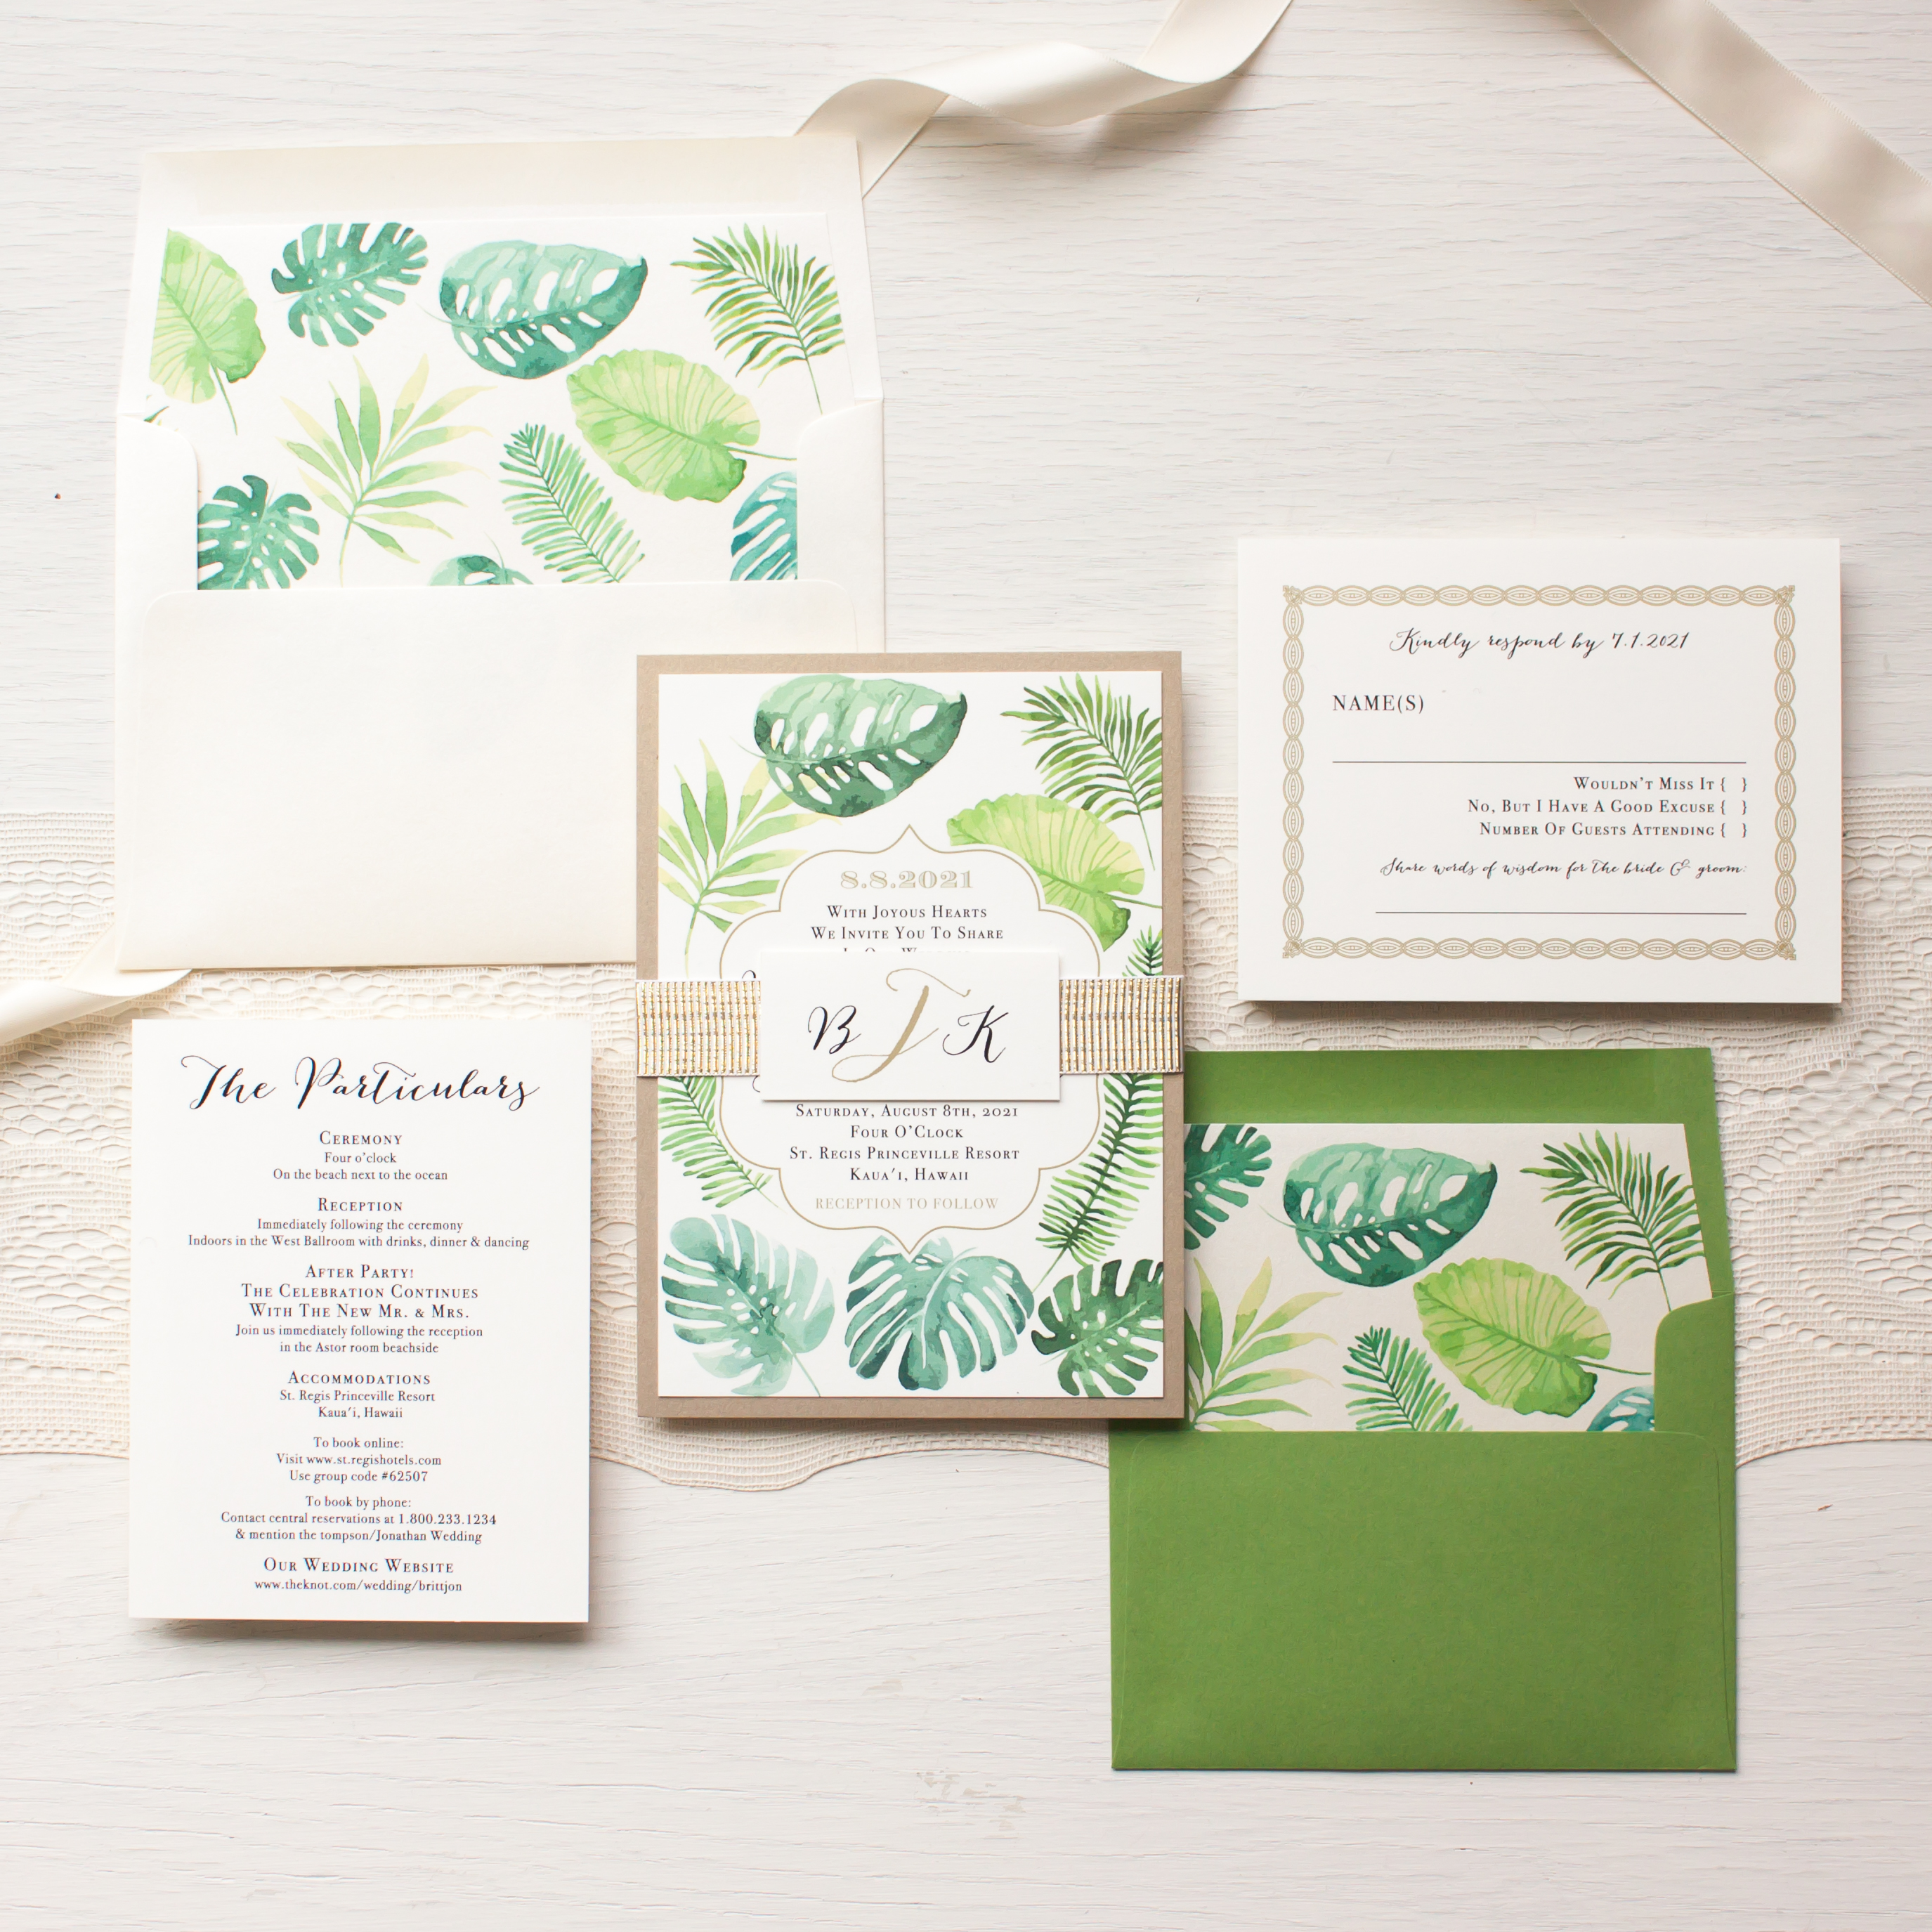 Tropical Green Destination Wedding Invitations | Beacon Lane